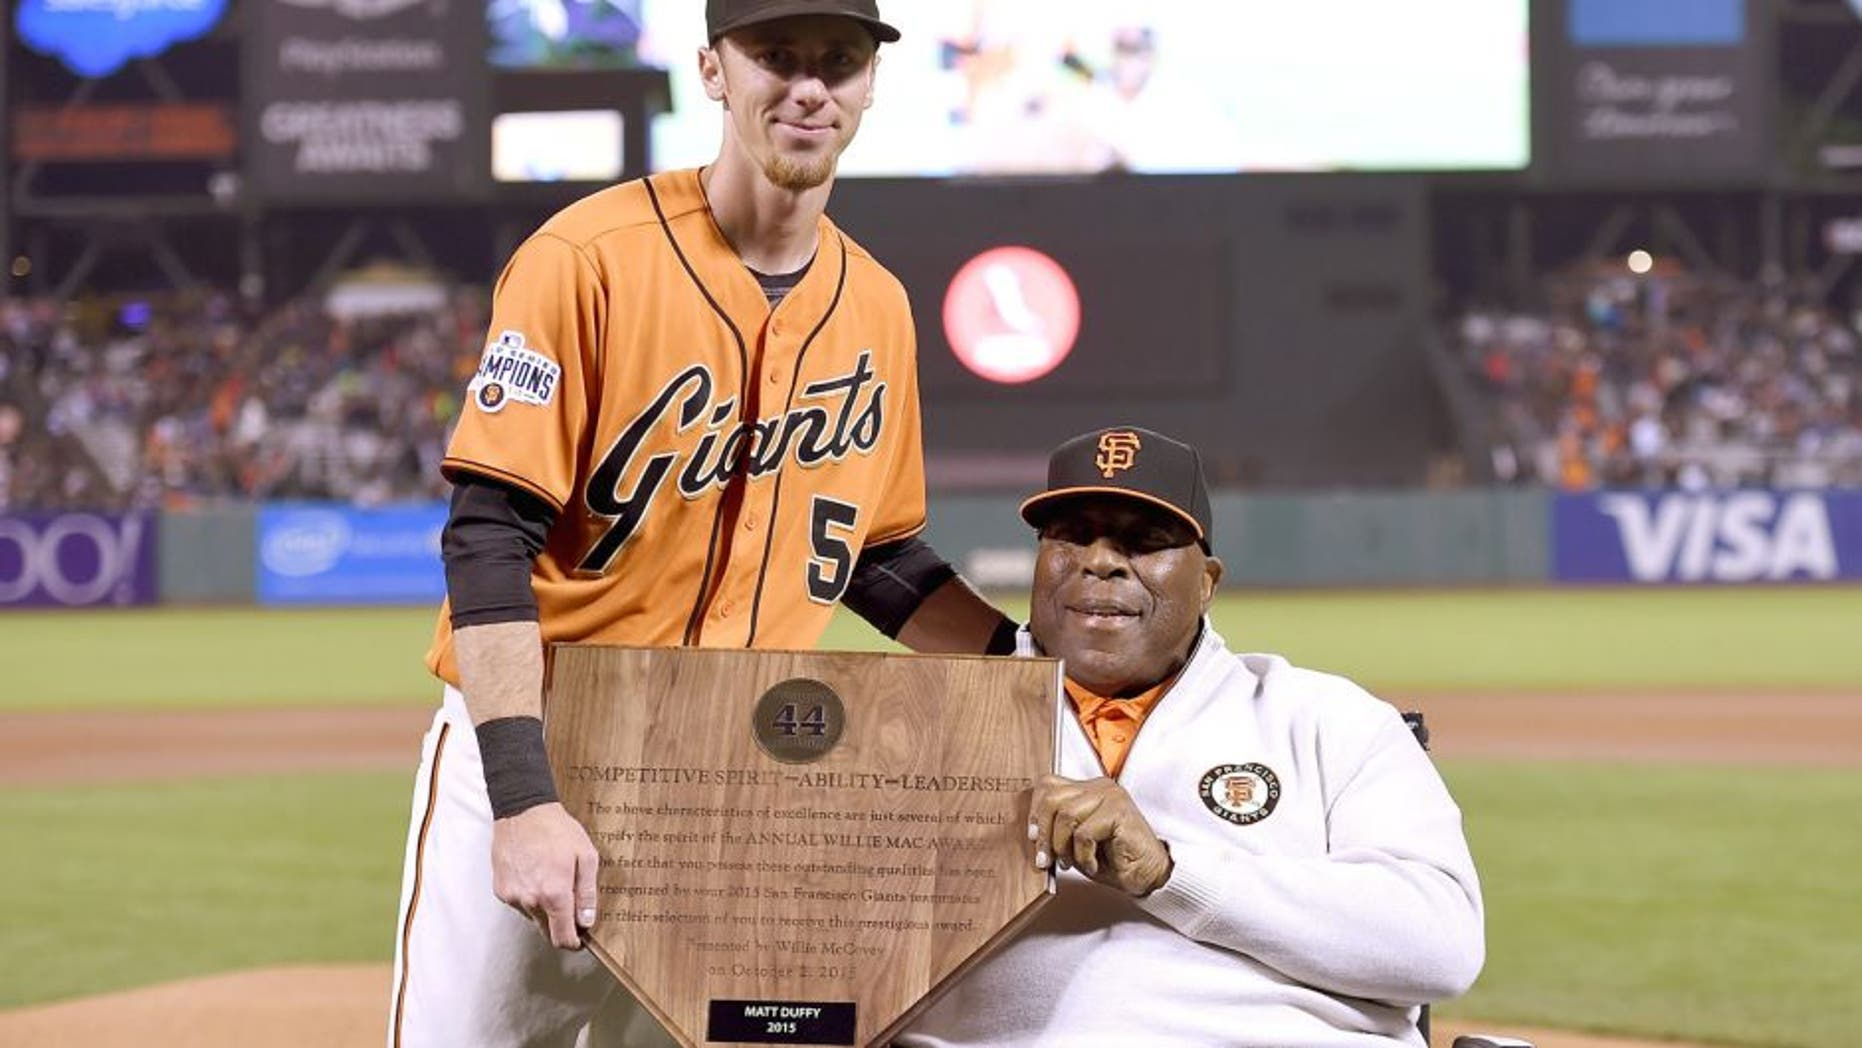 SAN FRANCISCO, CA - OCTOBER 02: Matt Duffy #5 of the San Francisco Giants, this year's recepient of the Willie Mac Award, stands with the former Giants great Willie McCovey prior to the game against the Colorado Rockies at AT&T Park on October 2, 2015 in San Francisco, California. (Photo by Thearon W. Henderson/Getty Images)